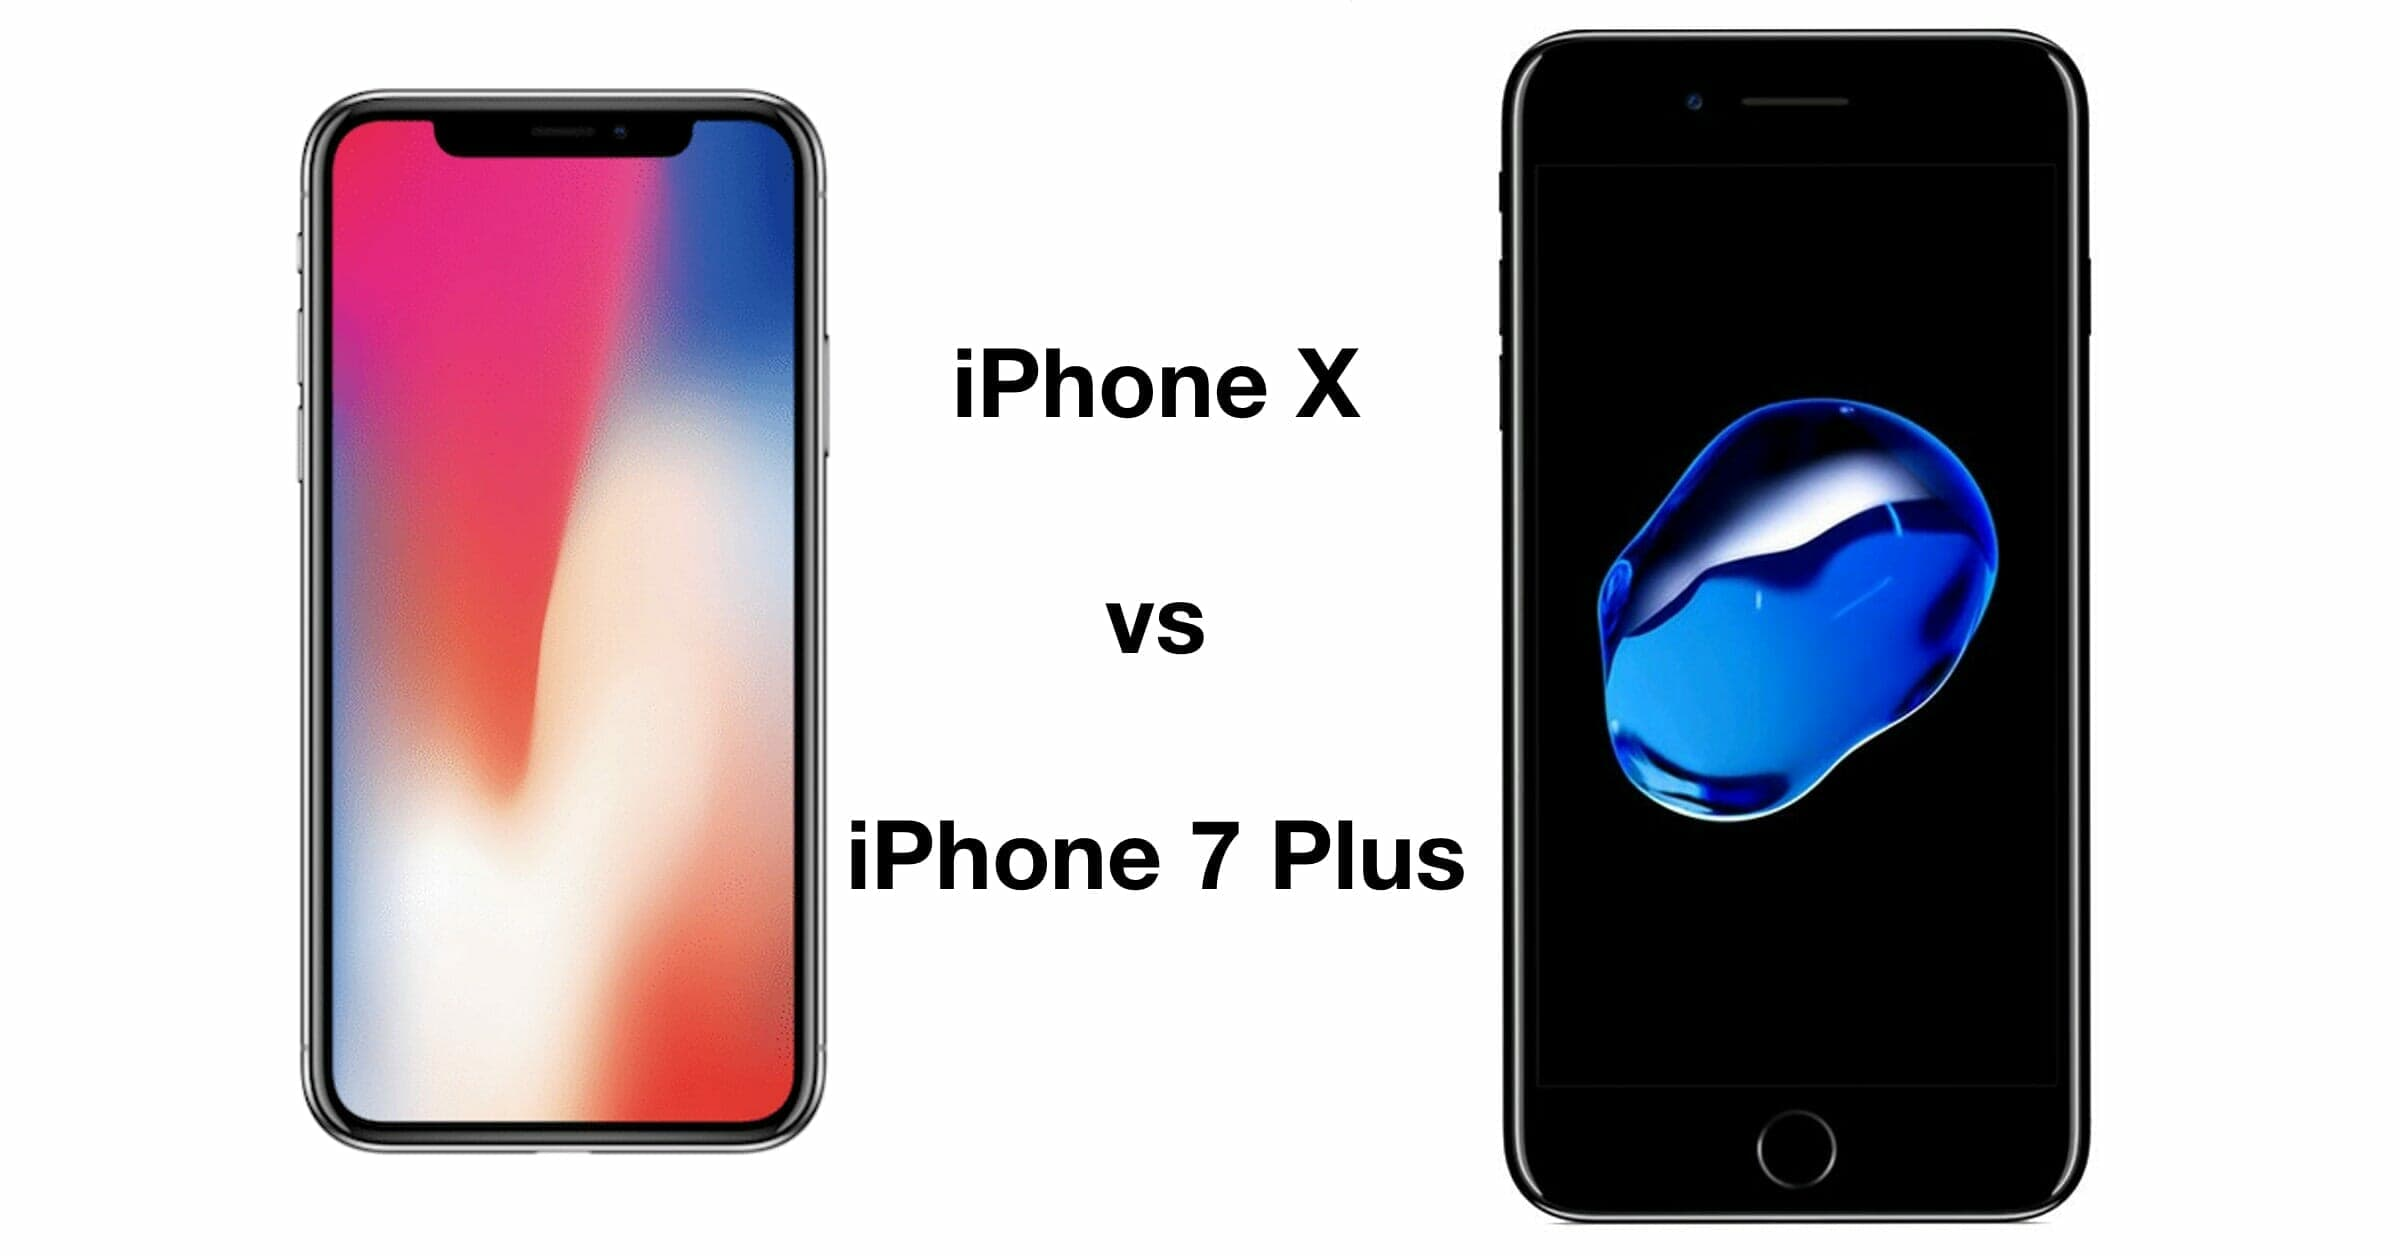 In-Depth Review And Comparison Of The IPhone X Vs. IPhone 7 Plus